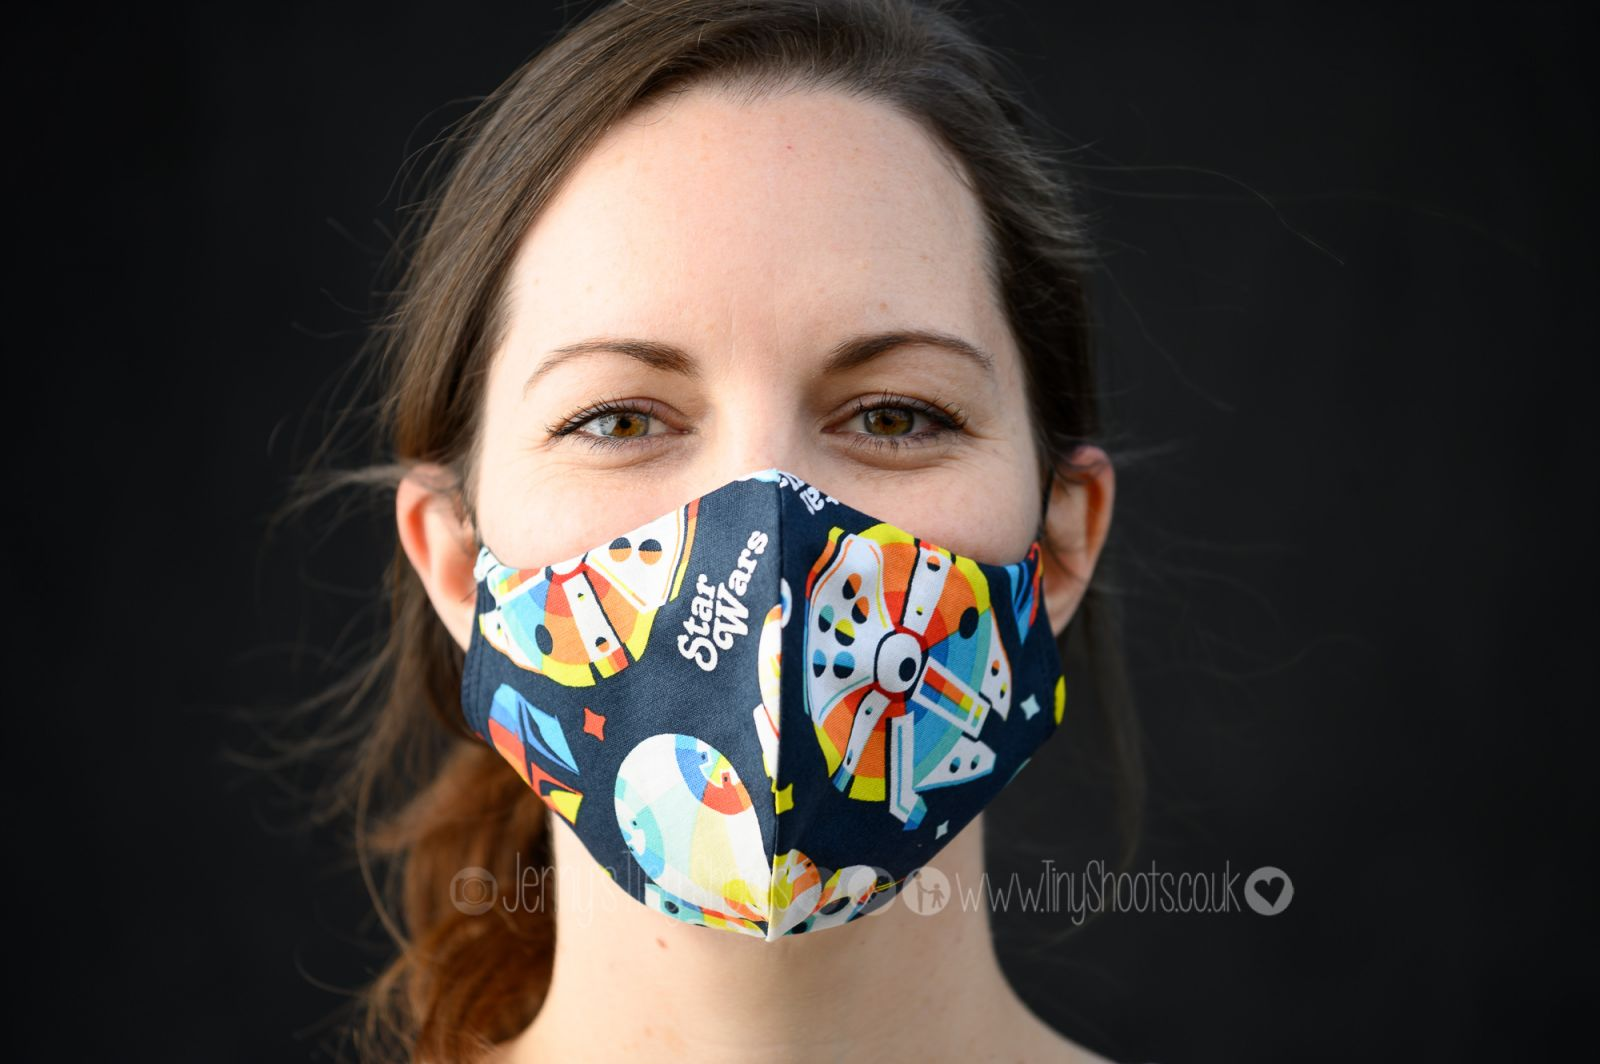 Lady in face mask